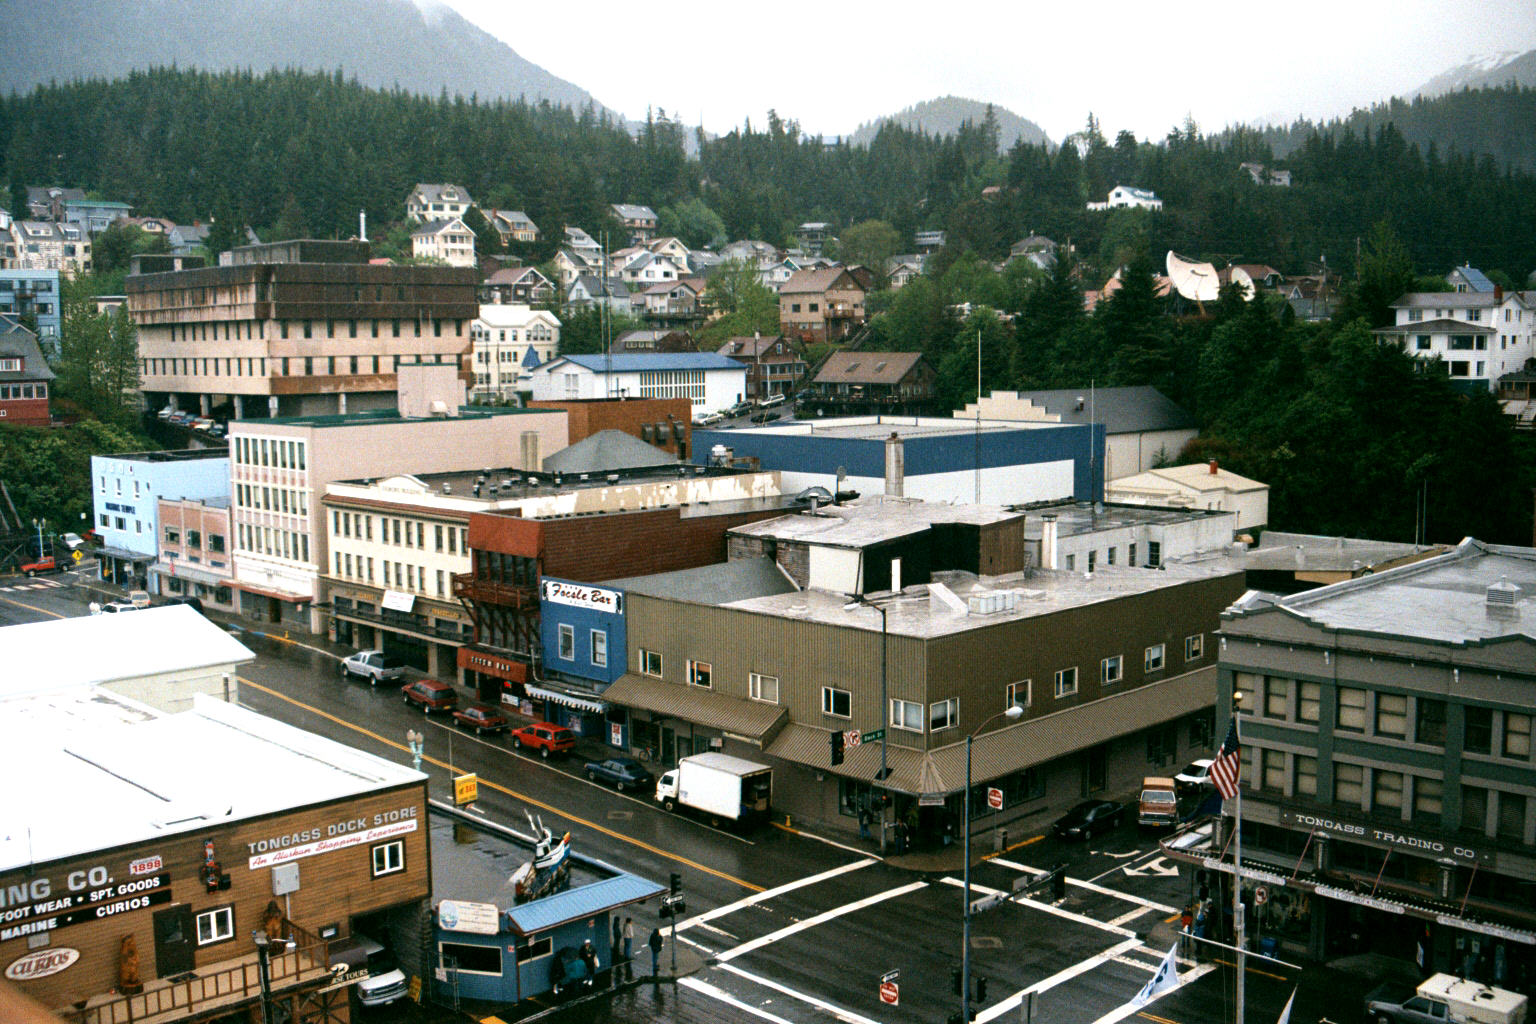 images of ketchikan alaska ketchikan alaska wikipedia 2898